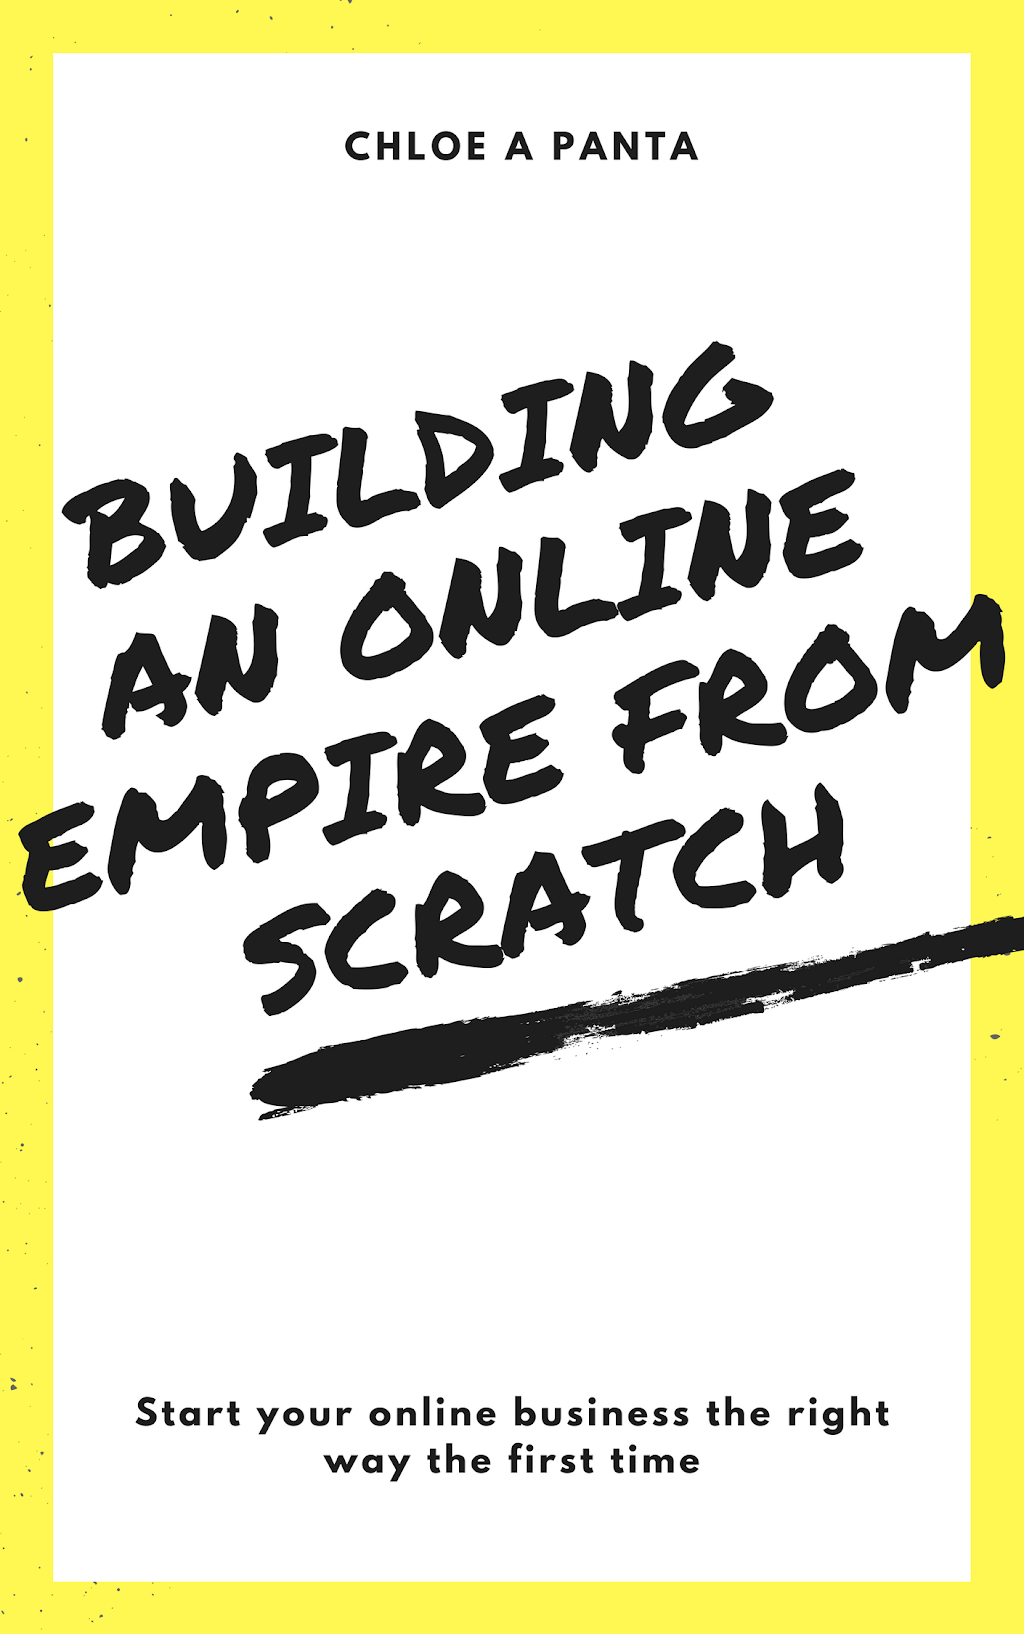 Chloe Panta - Building An Online Empire From Scratch